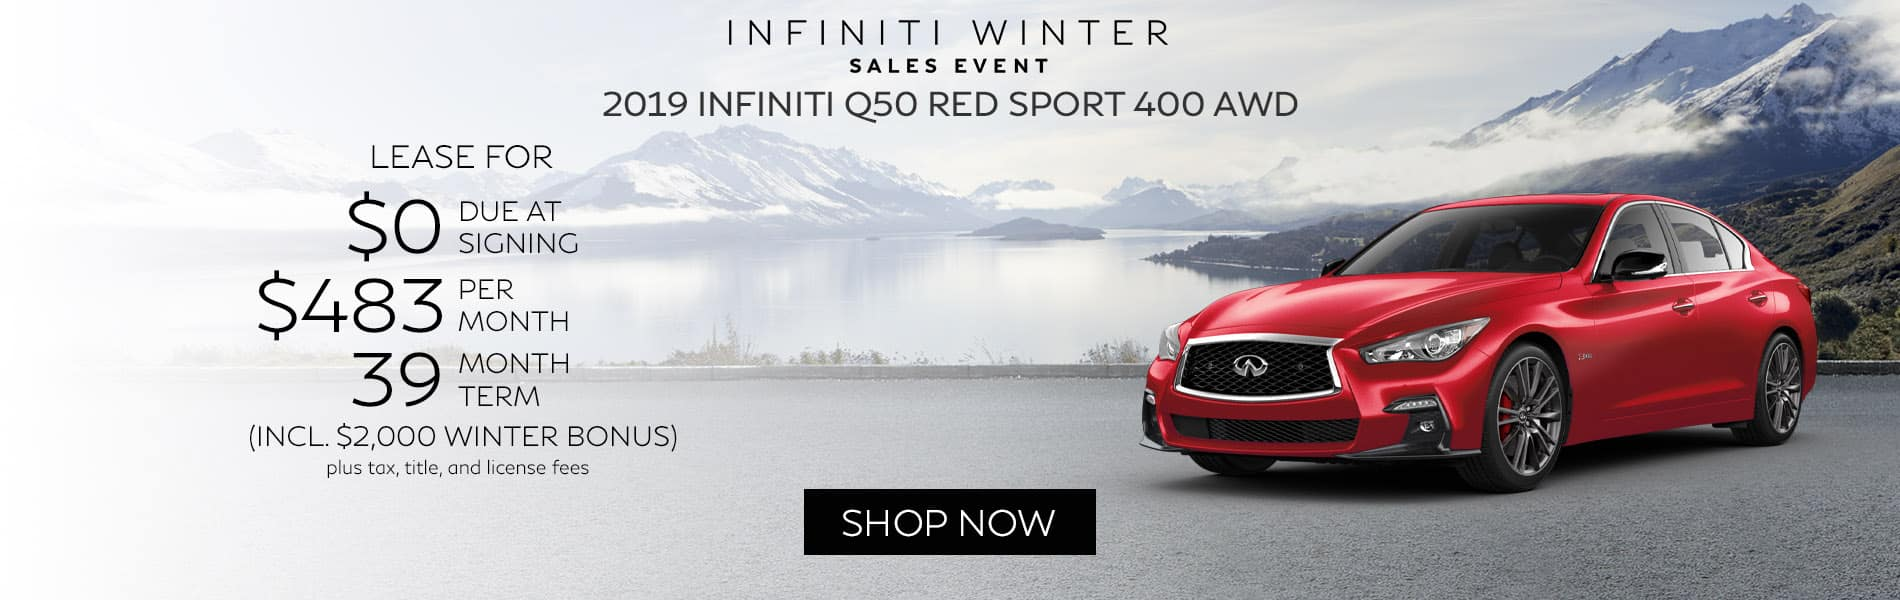 Lease a new 2019 INFINITI Q50 RED SPORT 400 AWD for $483 per month with just $0 due at signing.